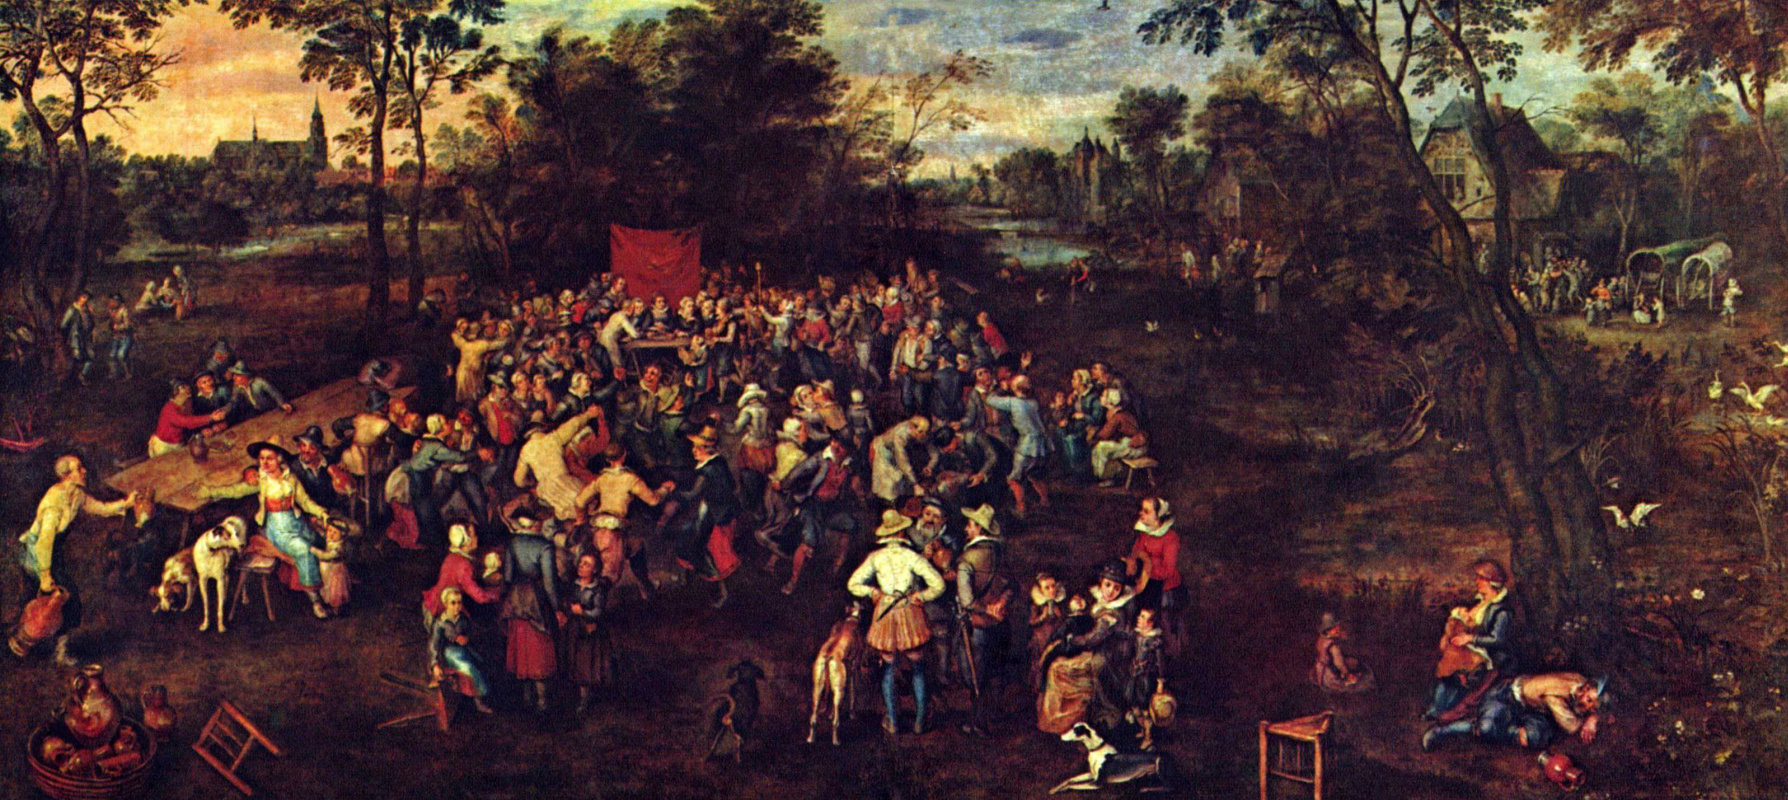 Jan Bruegel The Elder. The wedding feast